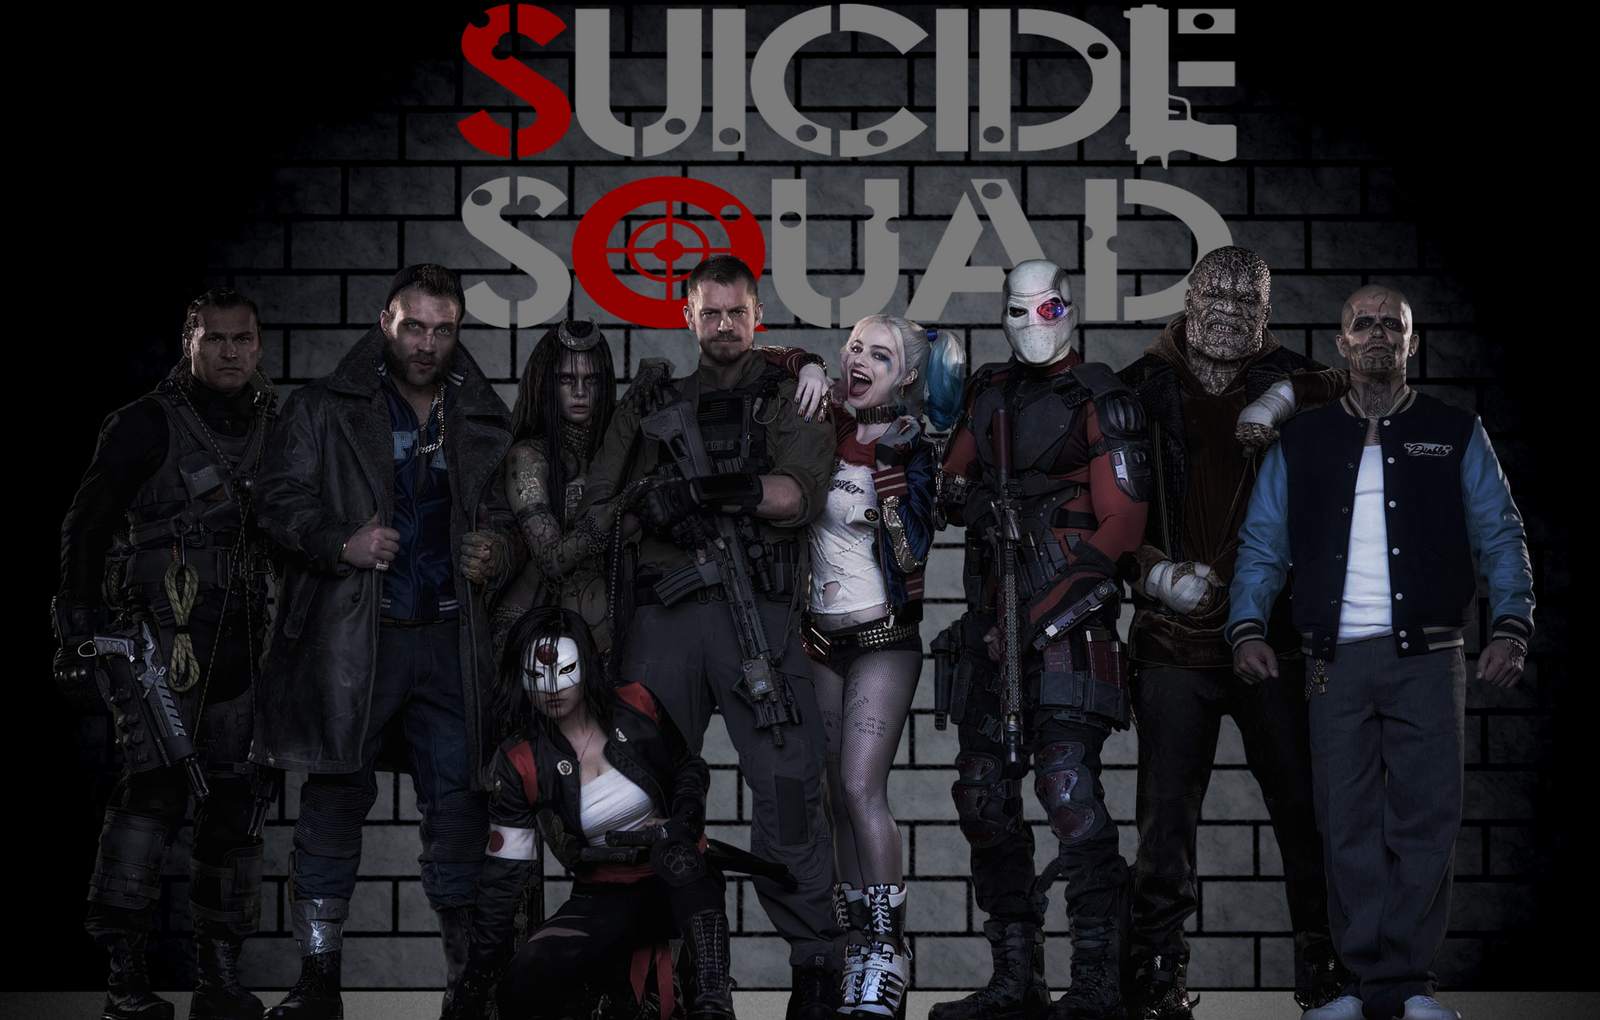 suicide squad wide wallpapers - photo #16